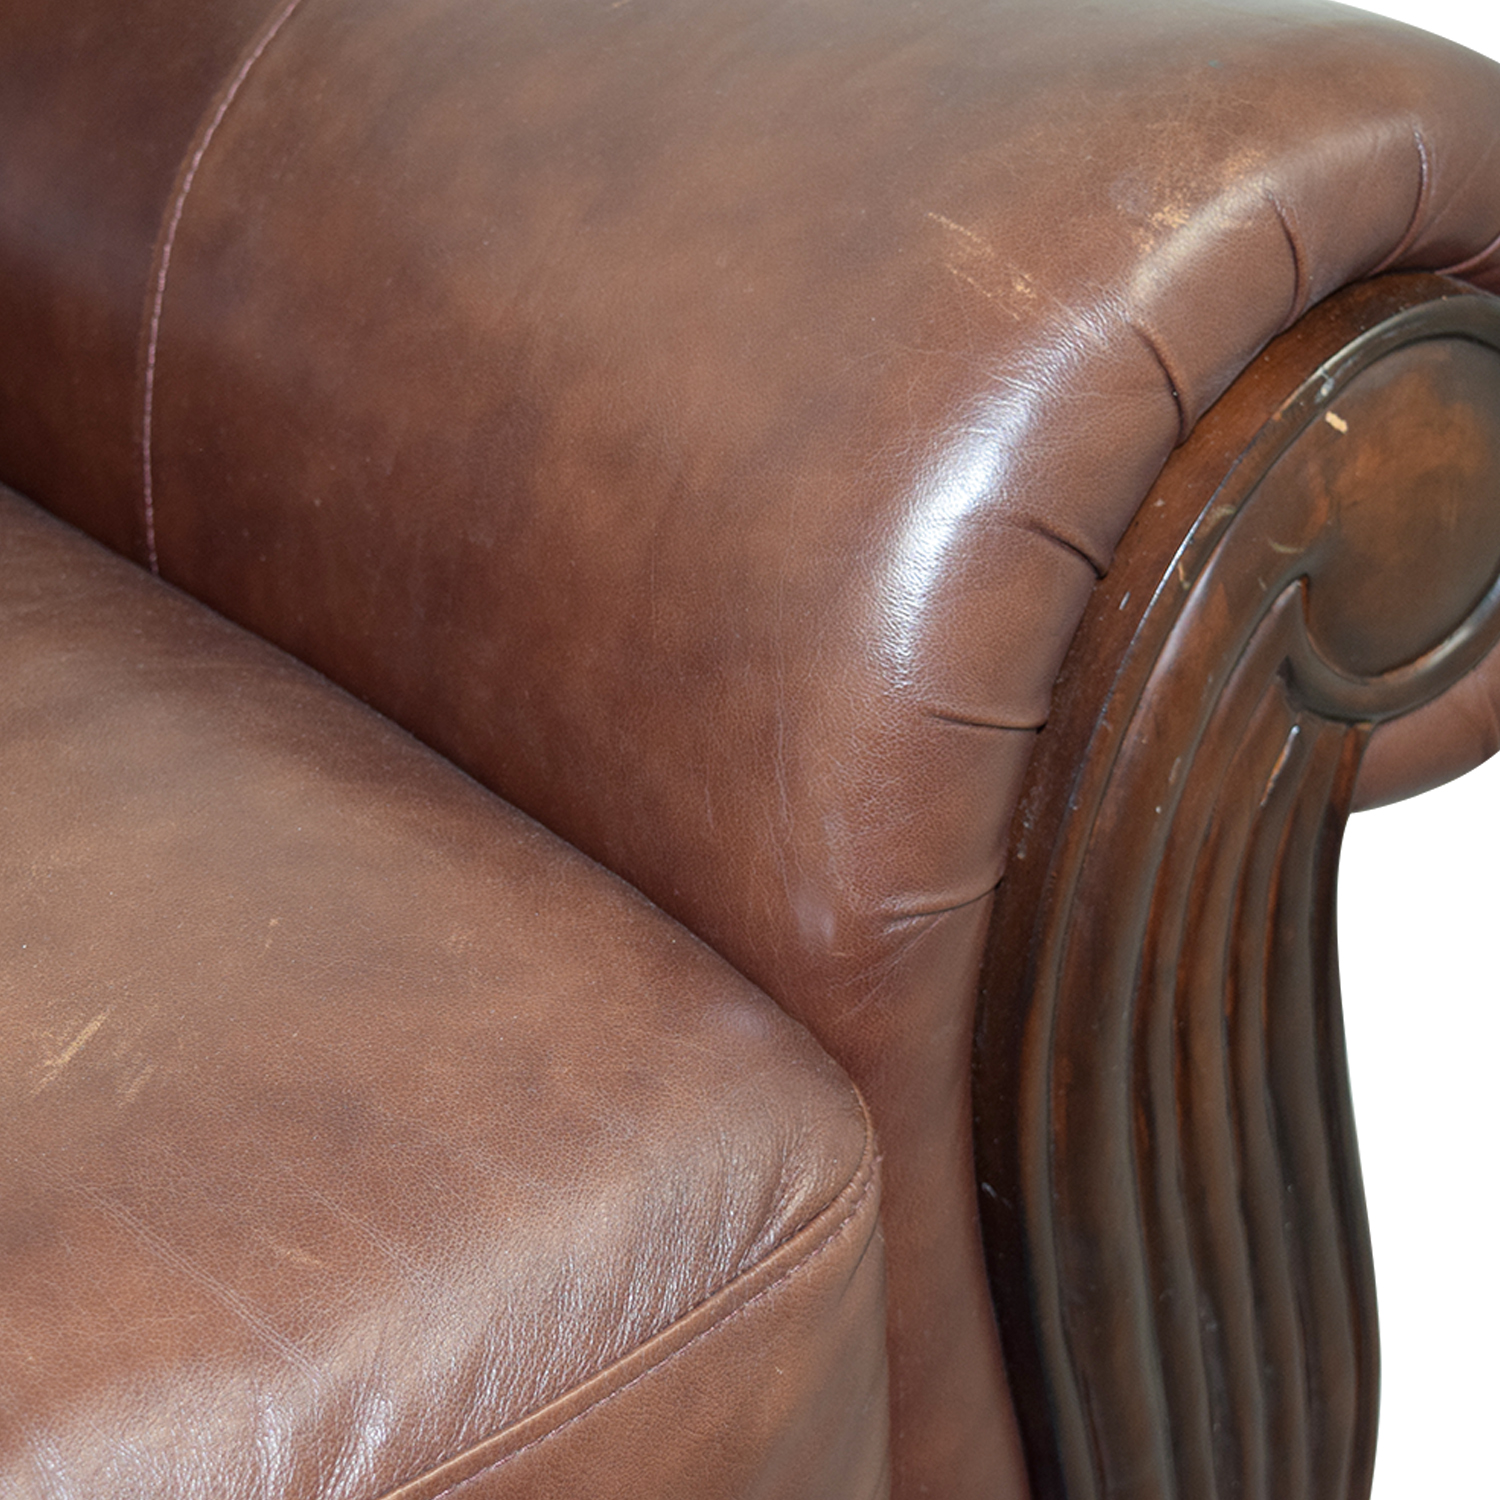 Accent Chairs To Go With Brown Leather Sofa 54 Off Rooms To Go Rooms To Go Brown Leather Chair And Ottoman Chairs